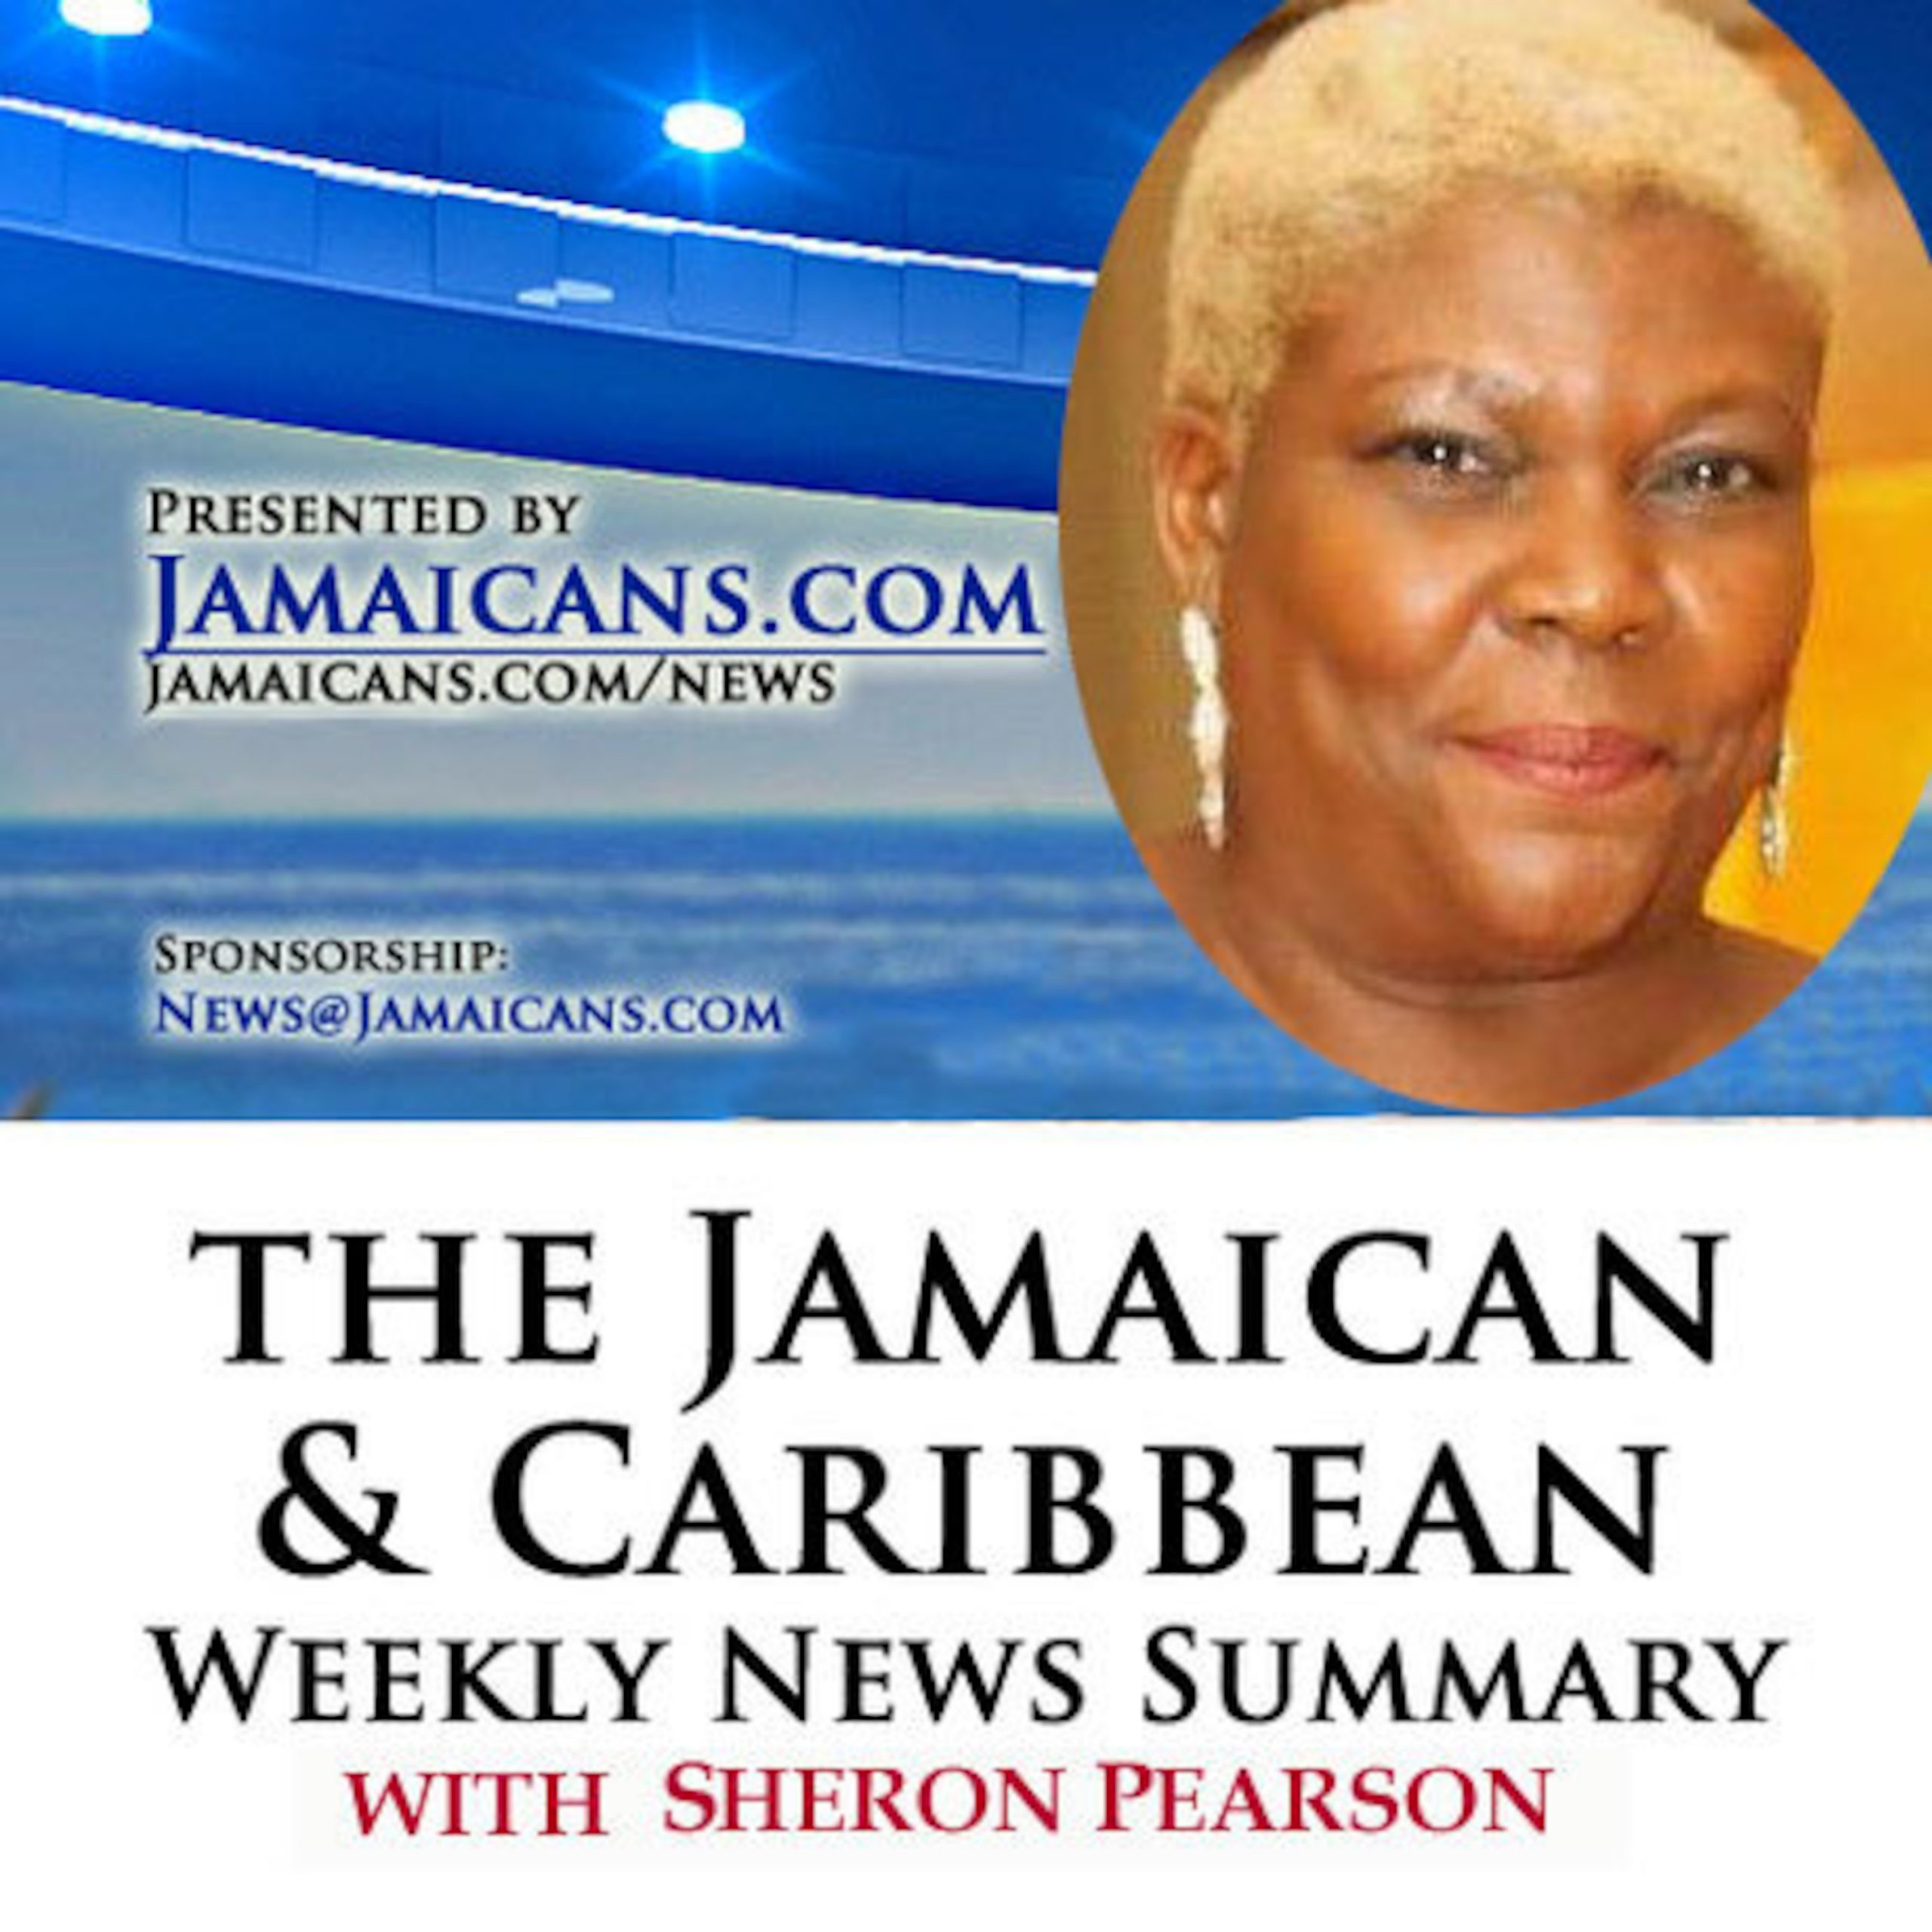 Listen to the Podcast of 7 Jamaican & Caribbean News Stories You May Have missed for the week ending November 29, 2019.